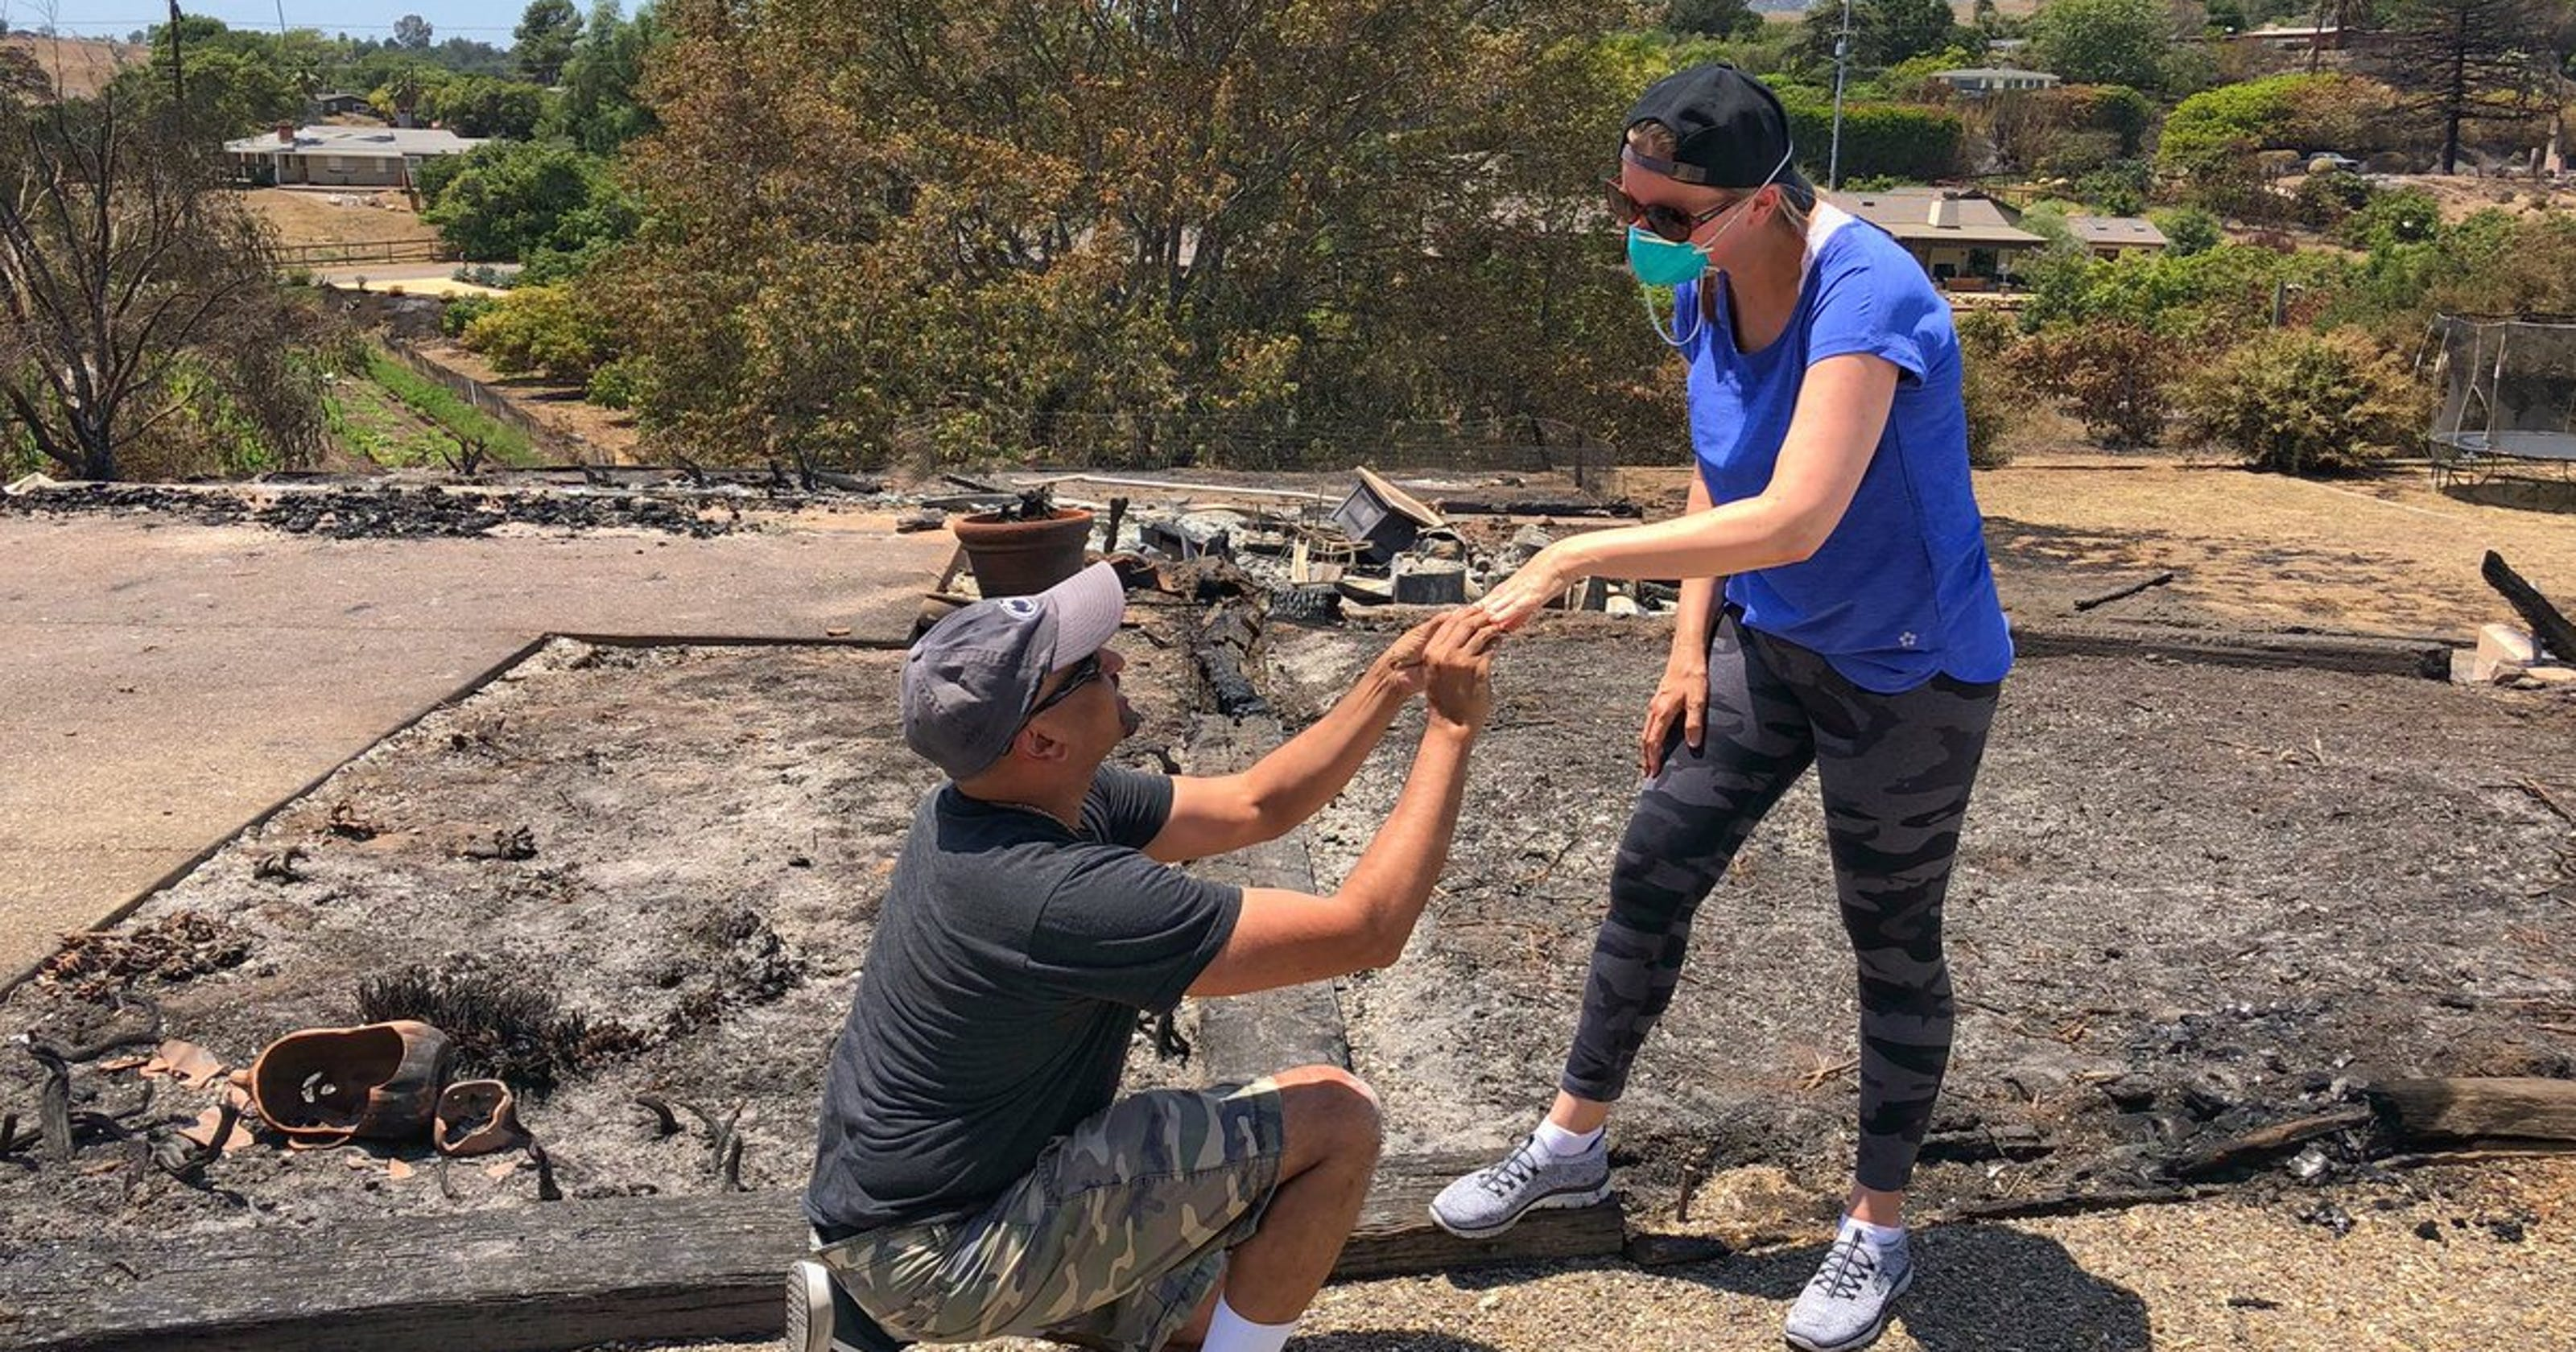 In the ashes of their Goleta home, wedding ring scorched by